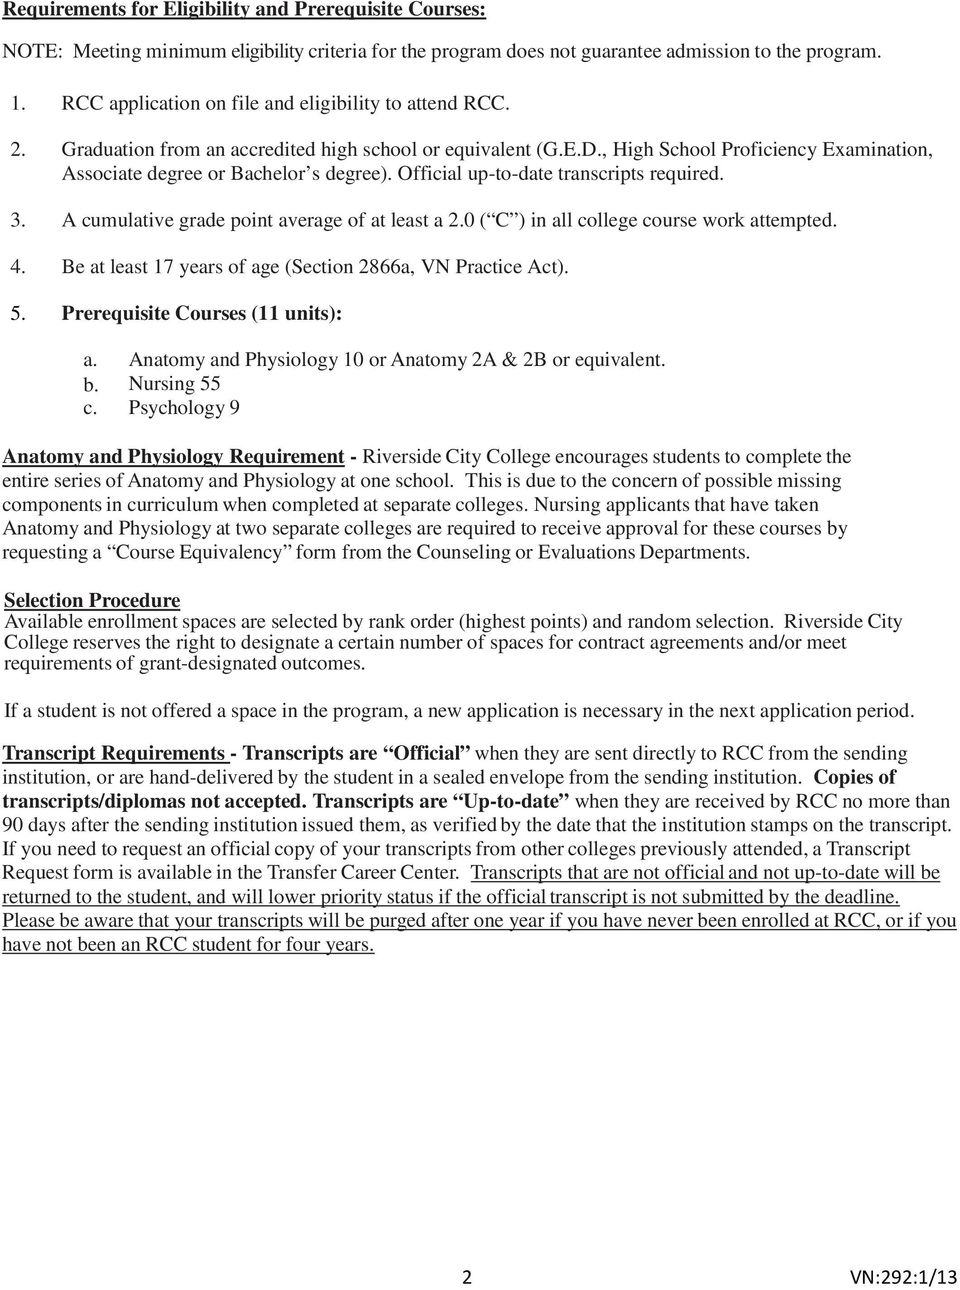 VOCATIONAL NURSING INFORMATION SHEET - PDF